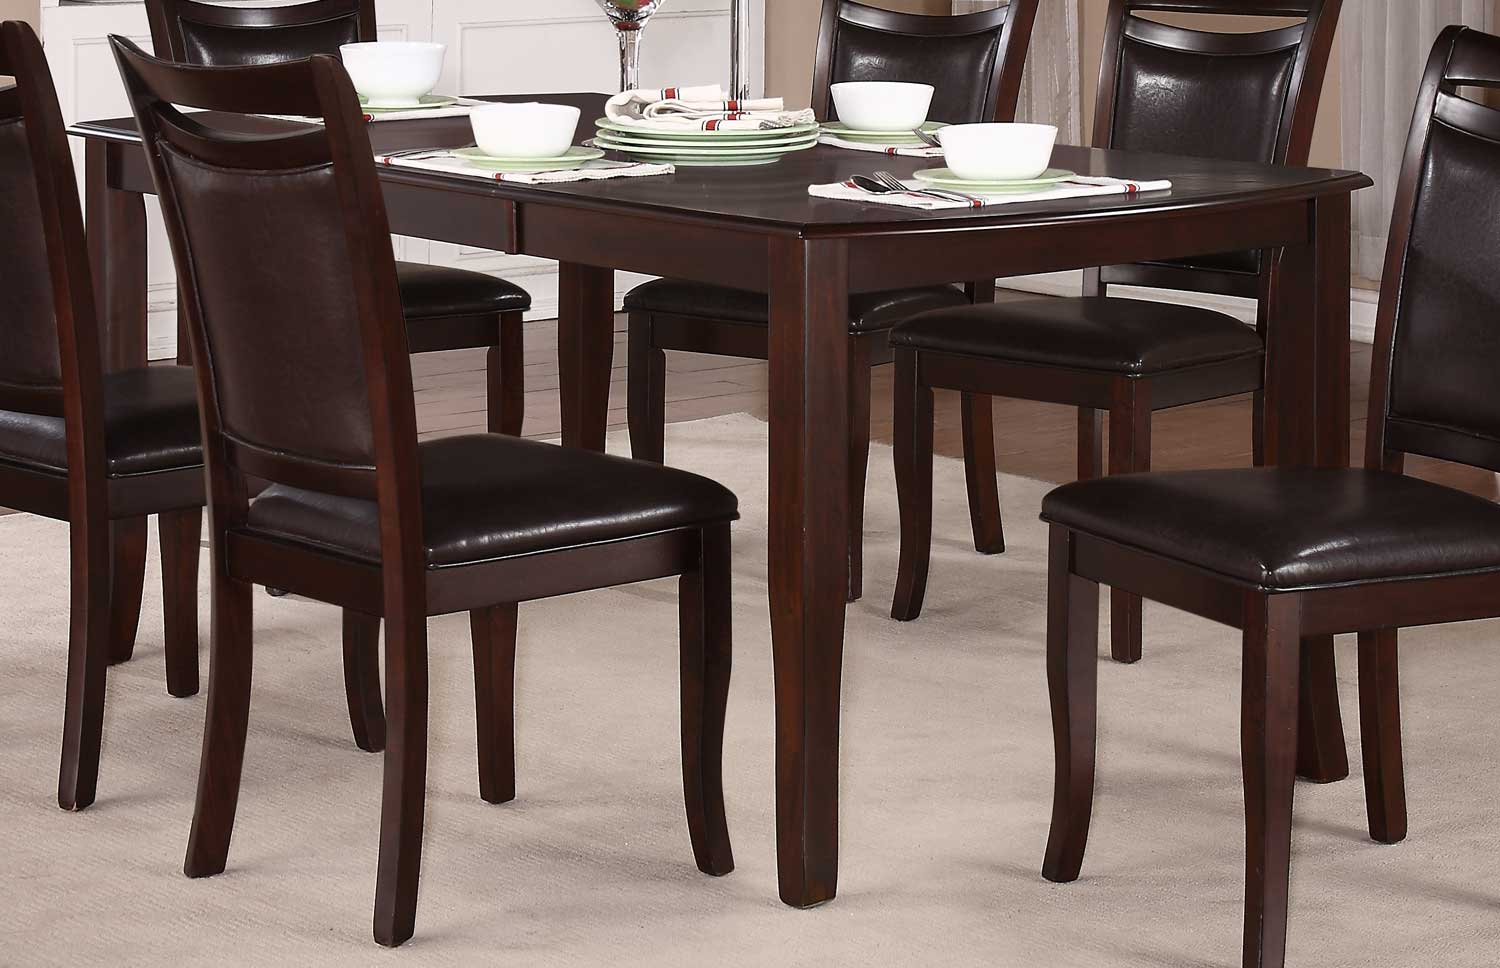 Homelegance Maeve Dining Table - Dark Cherry